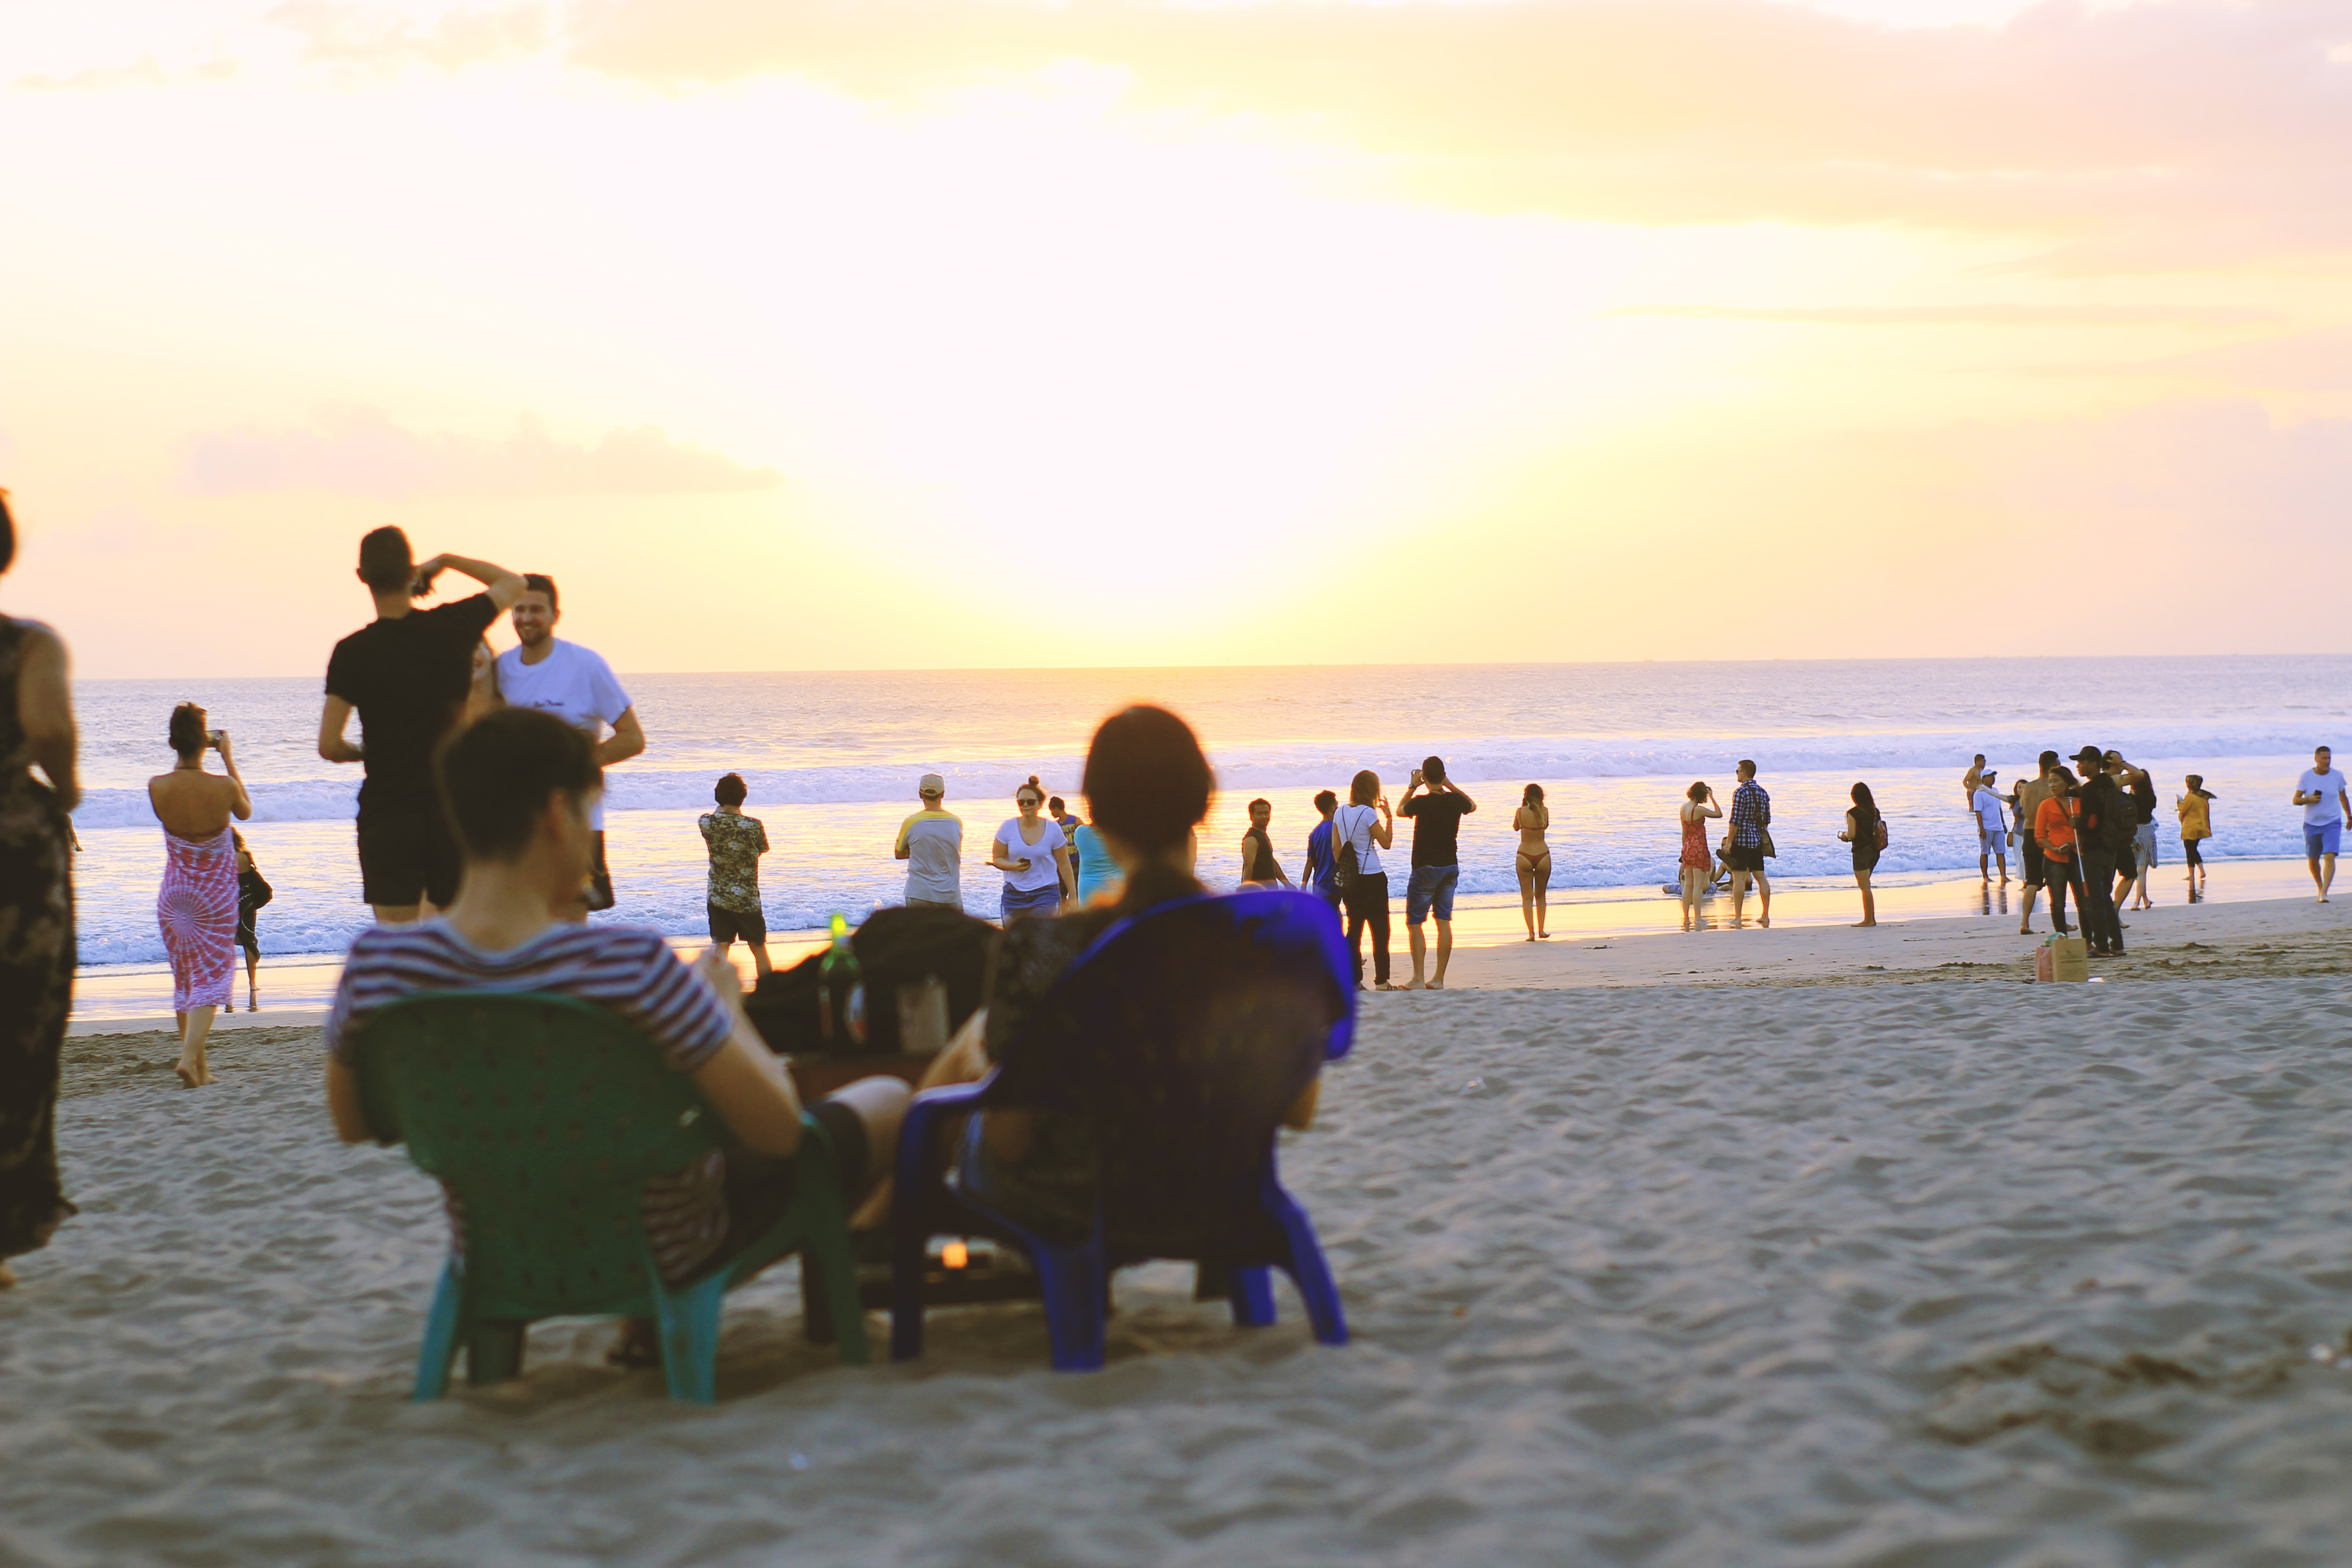 people on seashore during golden hour